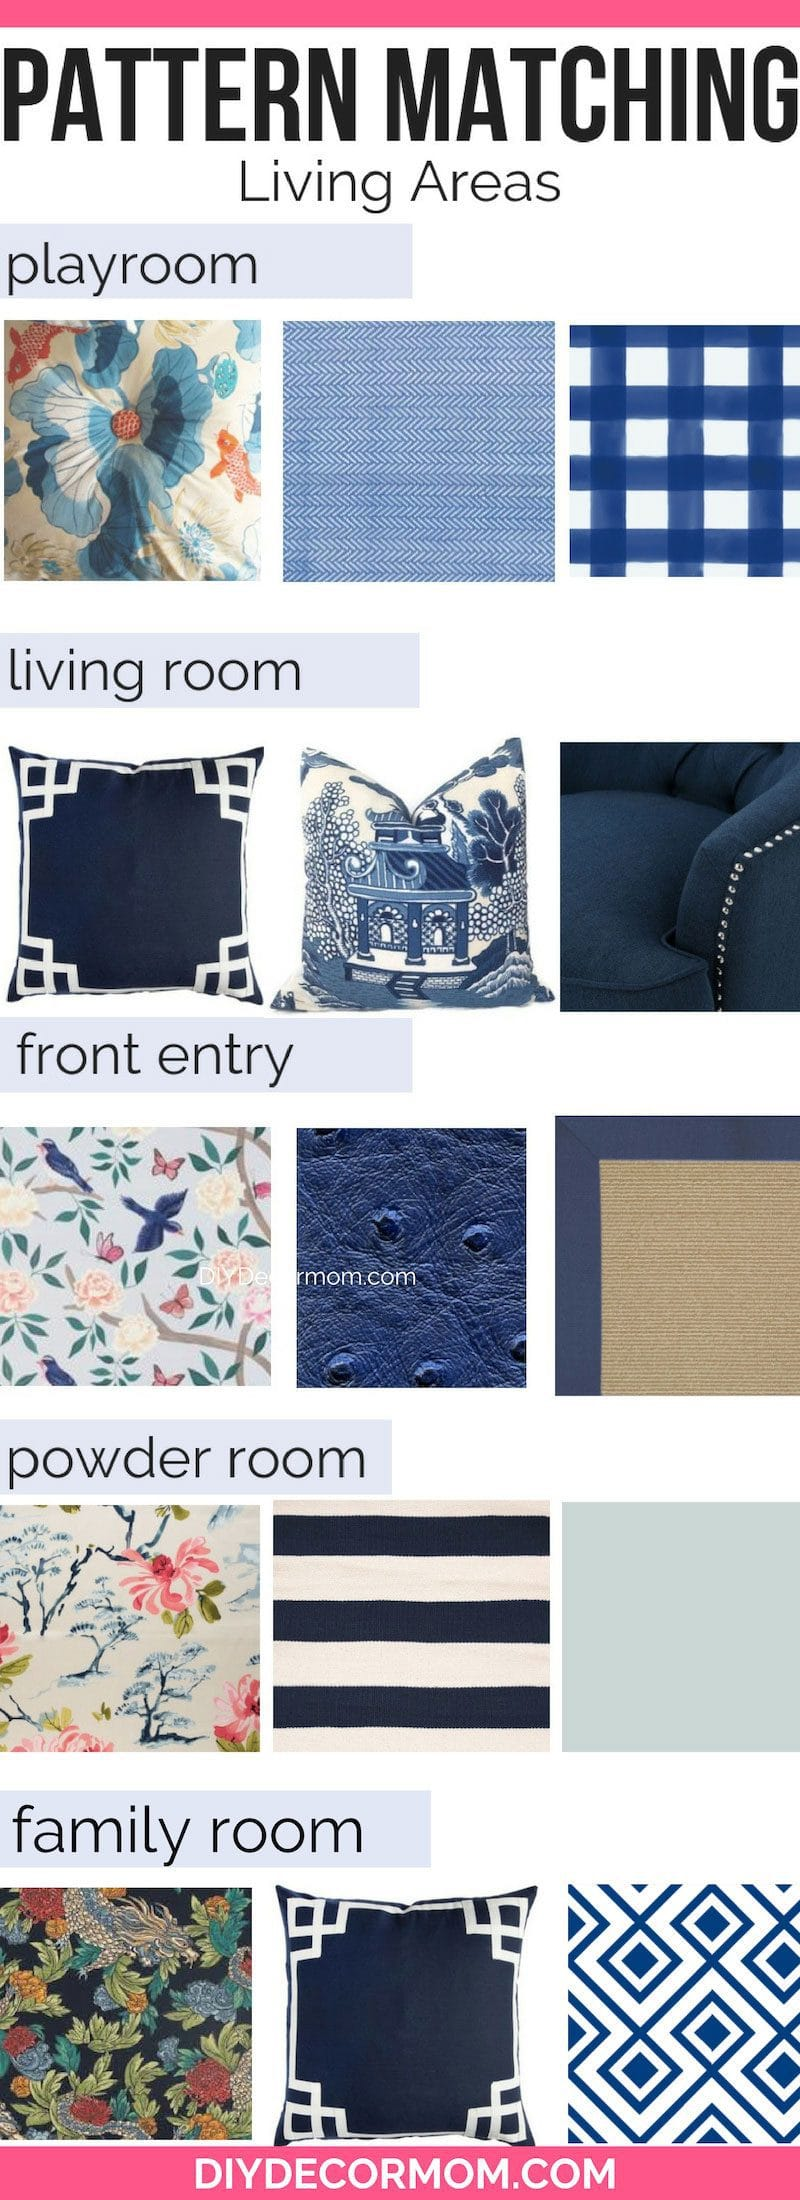 how to pick out fabric patterns in your home including mixing and matching patterns